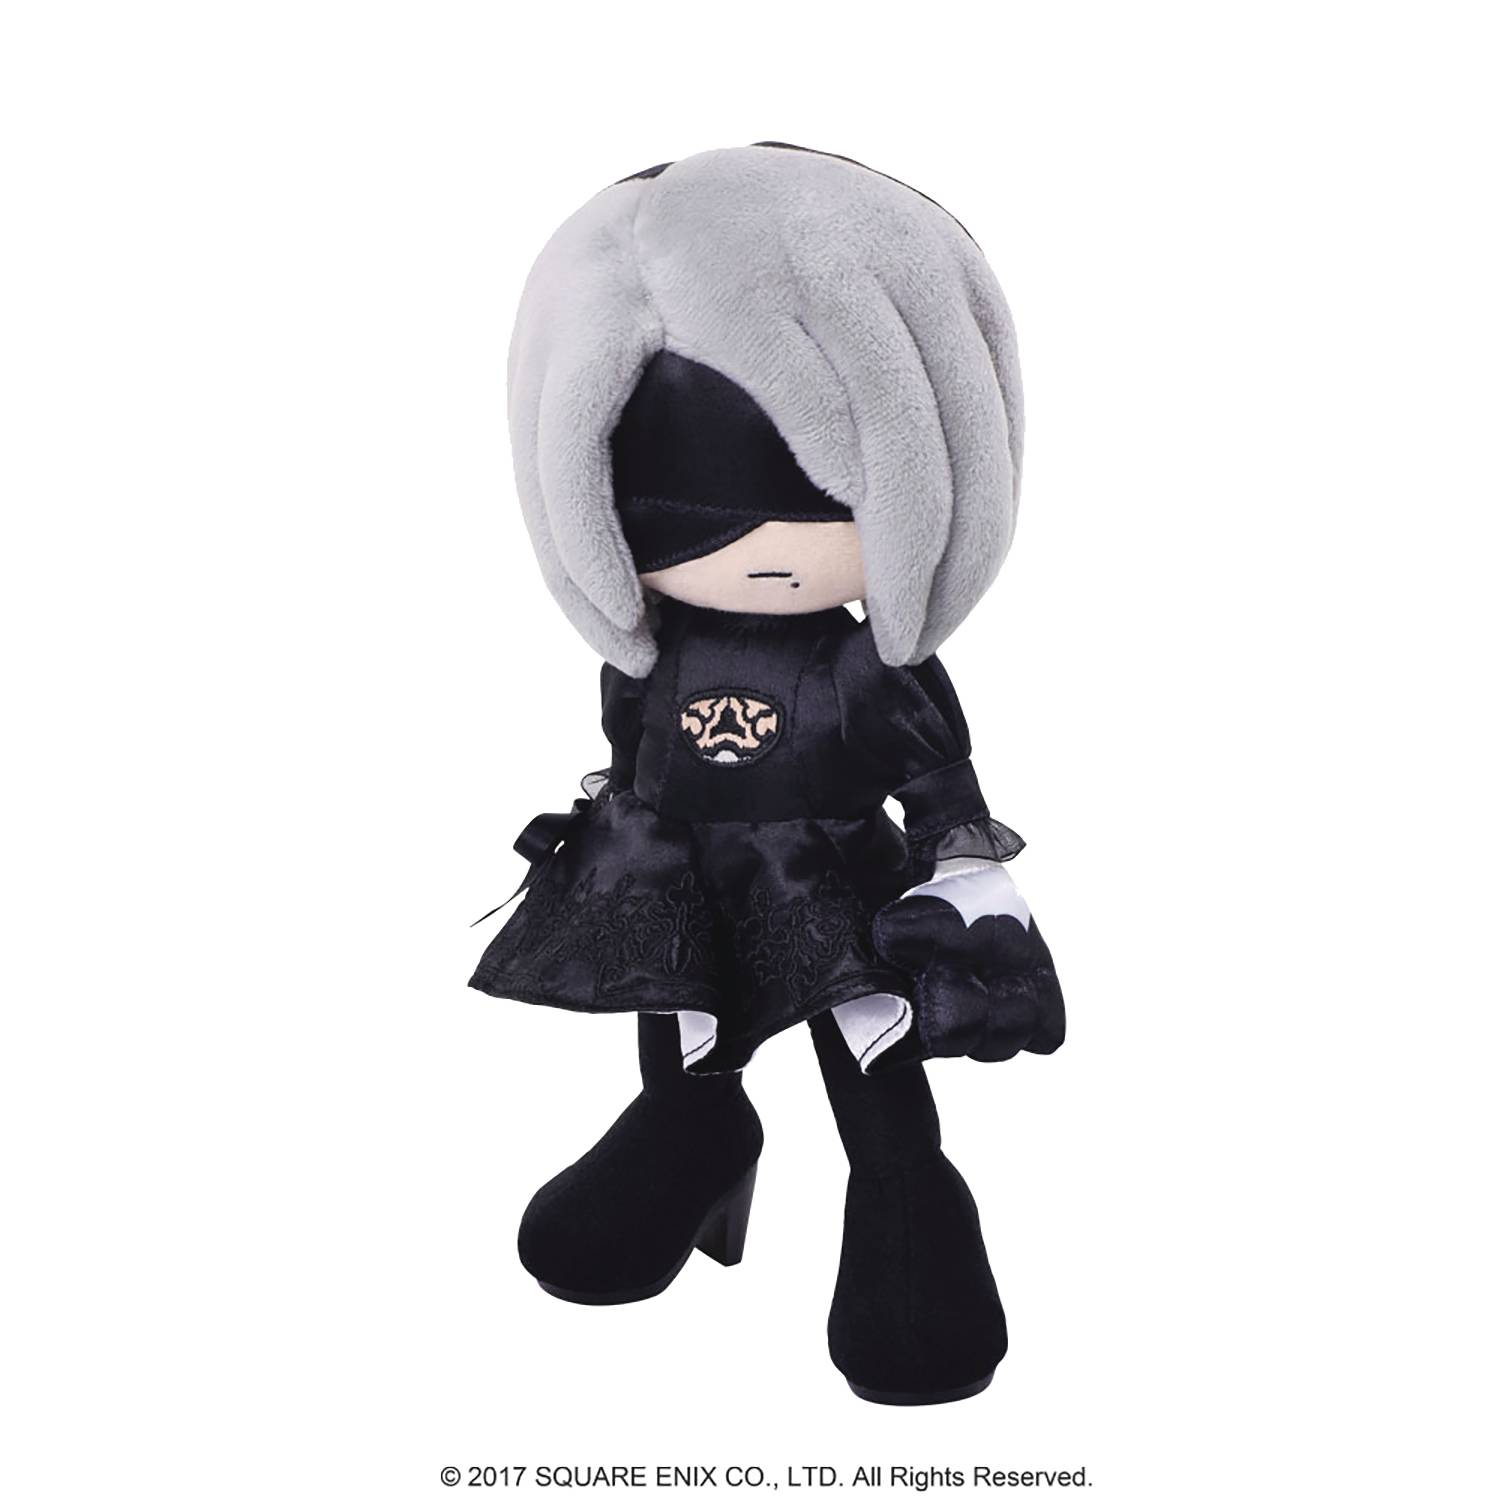 NIER AUTOMATA YORHA NO 2 TYPE B PLUSH ACTION DOLL